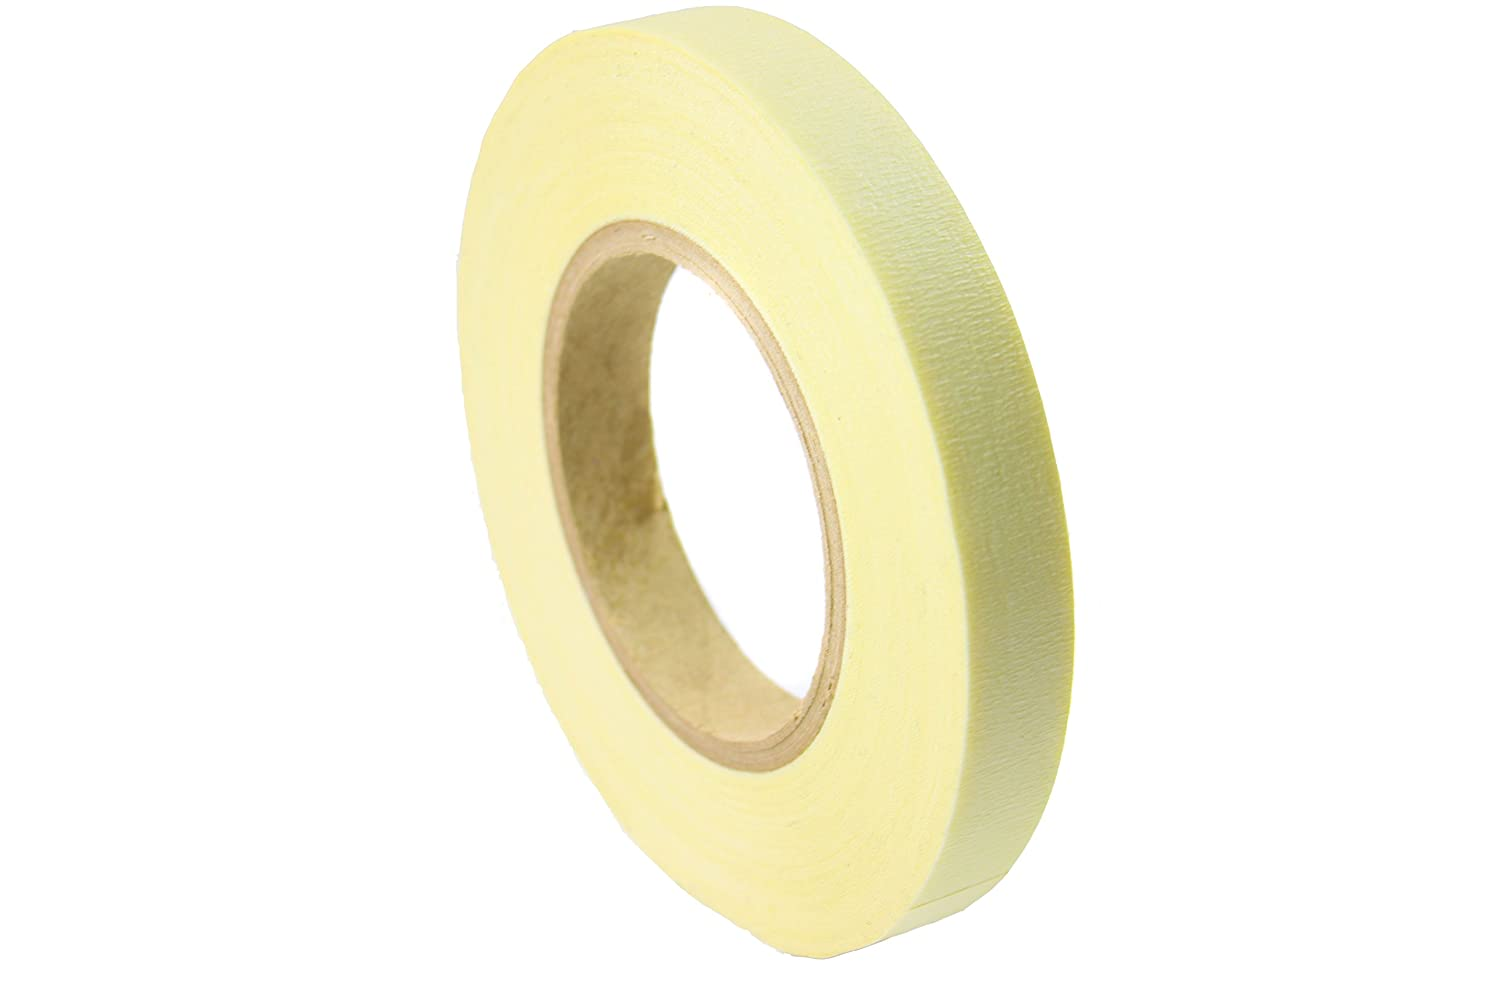 CS Hyde 17-FibG-DS Double Sided Fiberglass Tape with Silicone Adhesive, 4.25